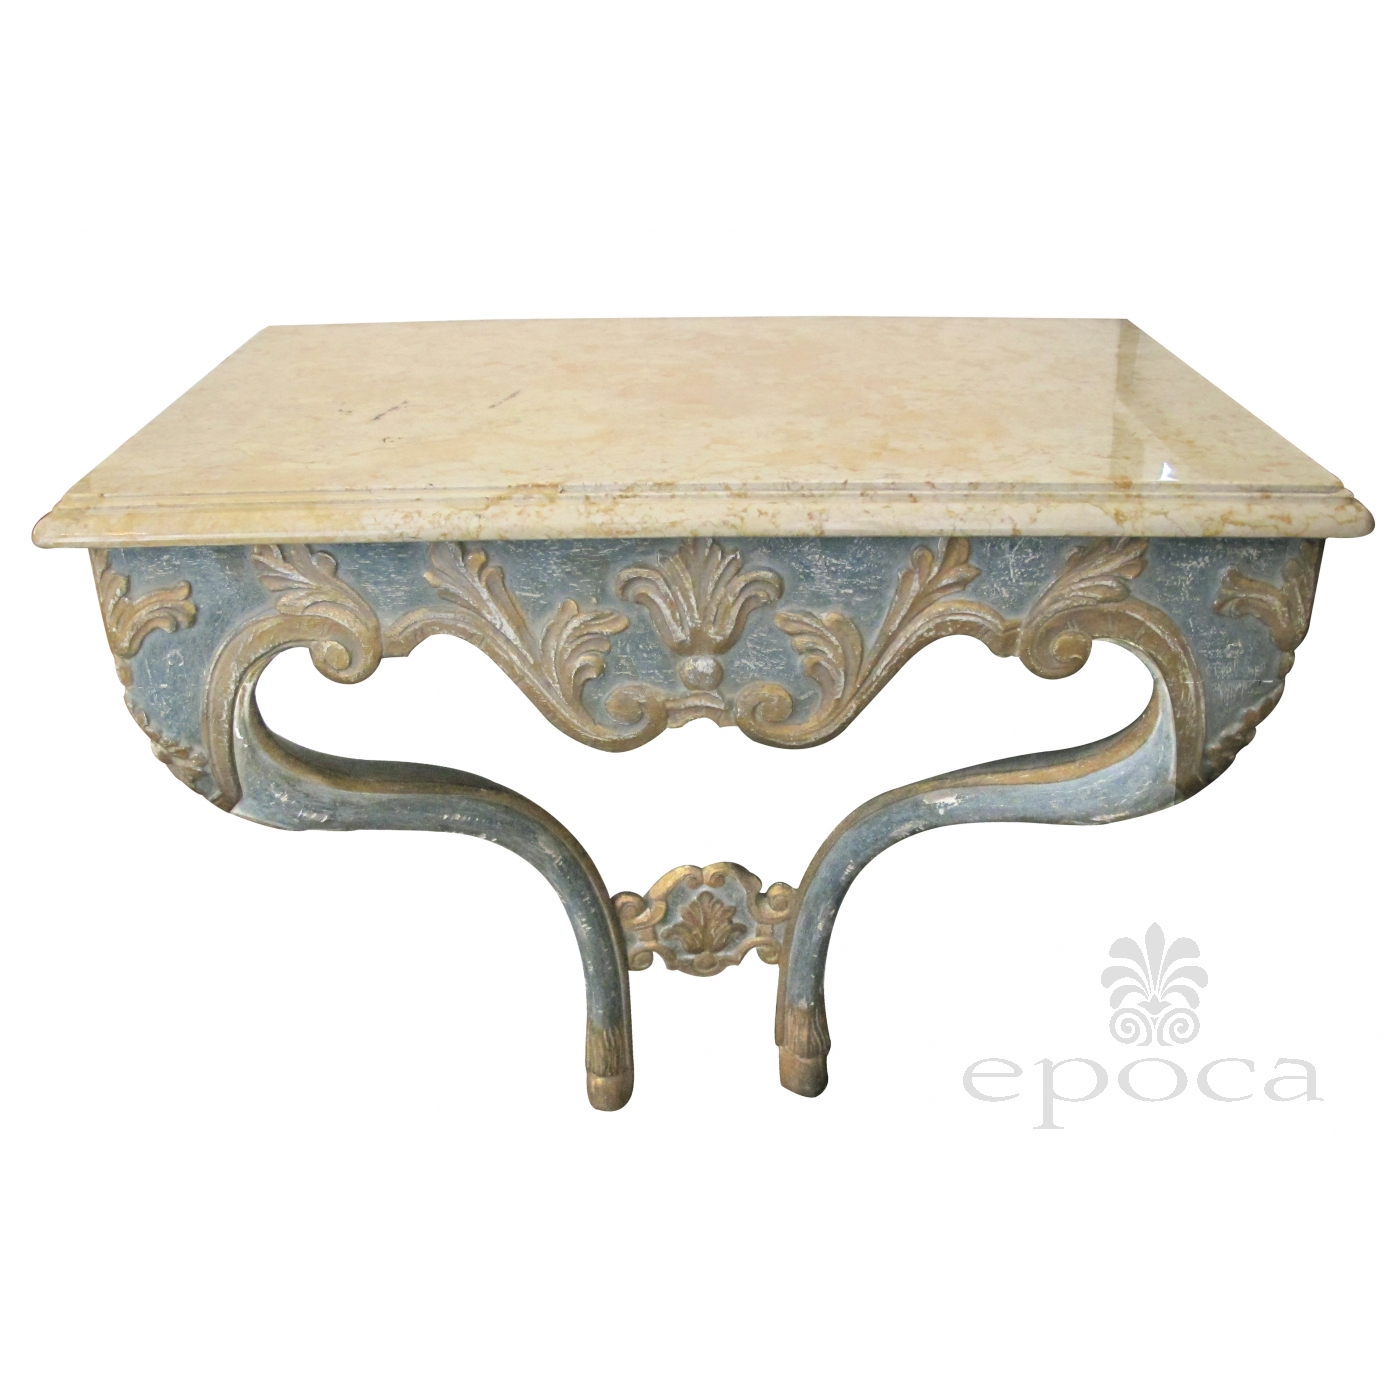 an elegant american baroque style greenpainted console table with